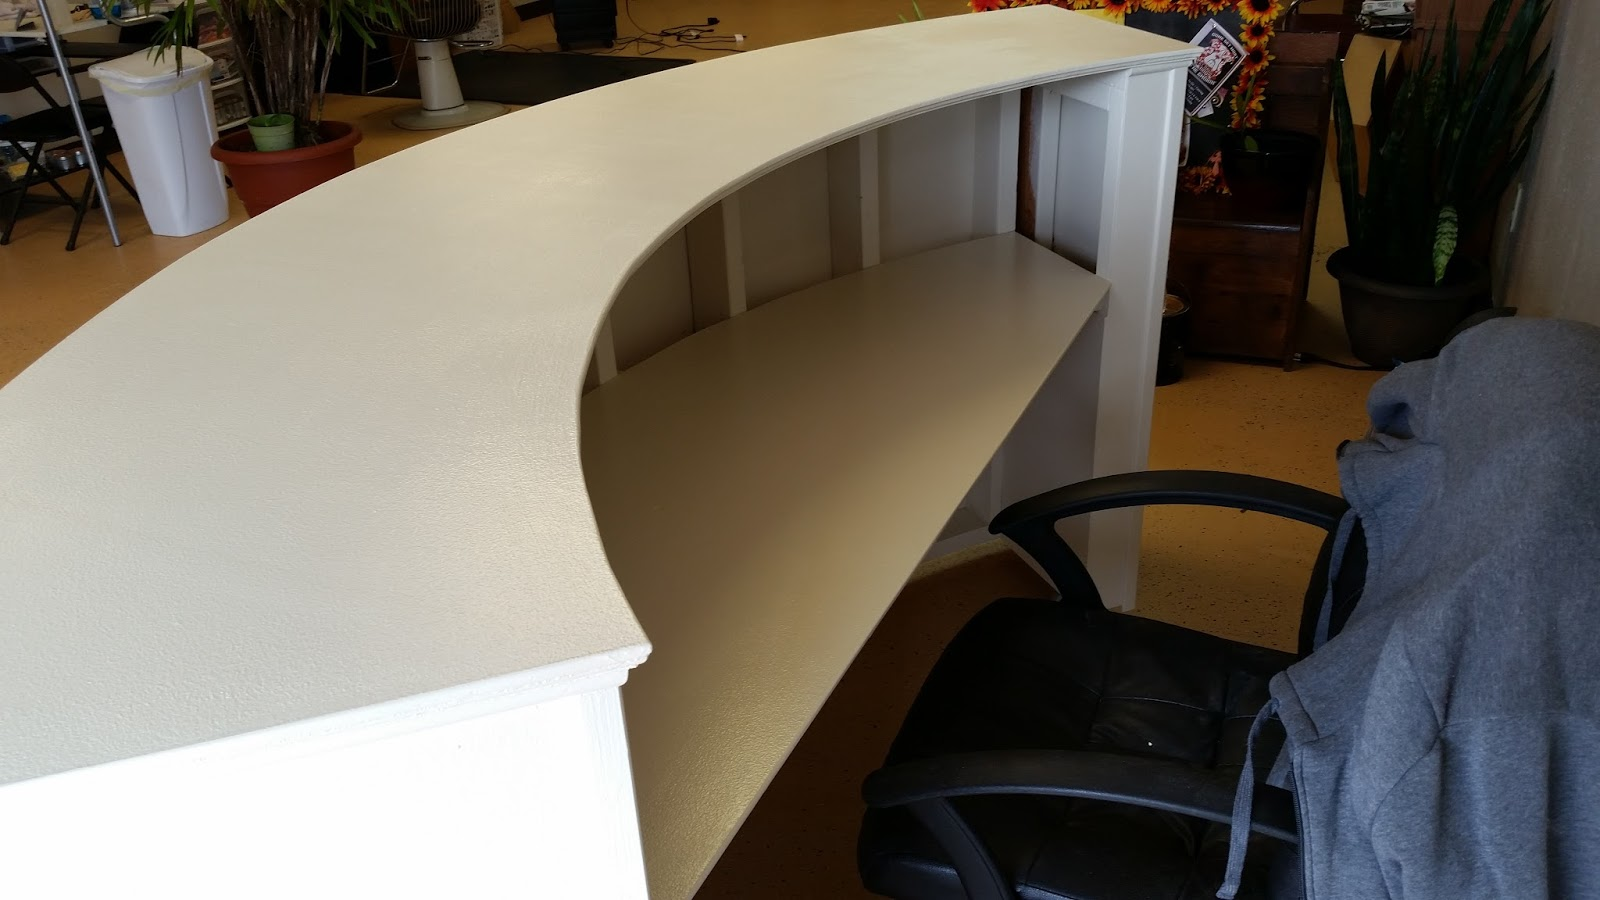 Handyman How 2: Building a Round Reception Desk